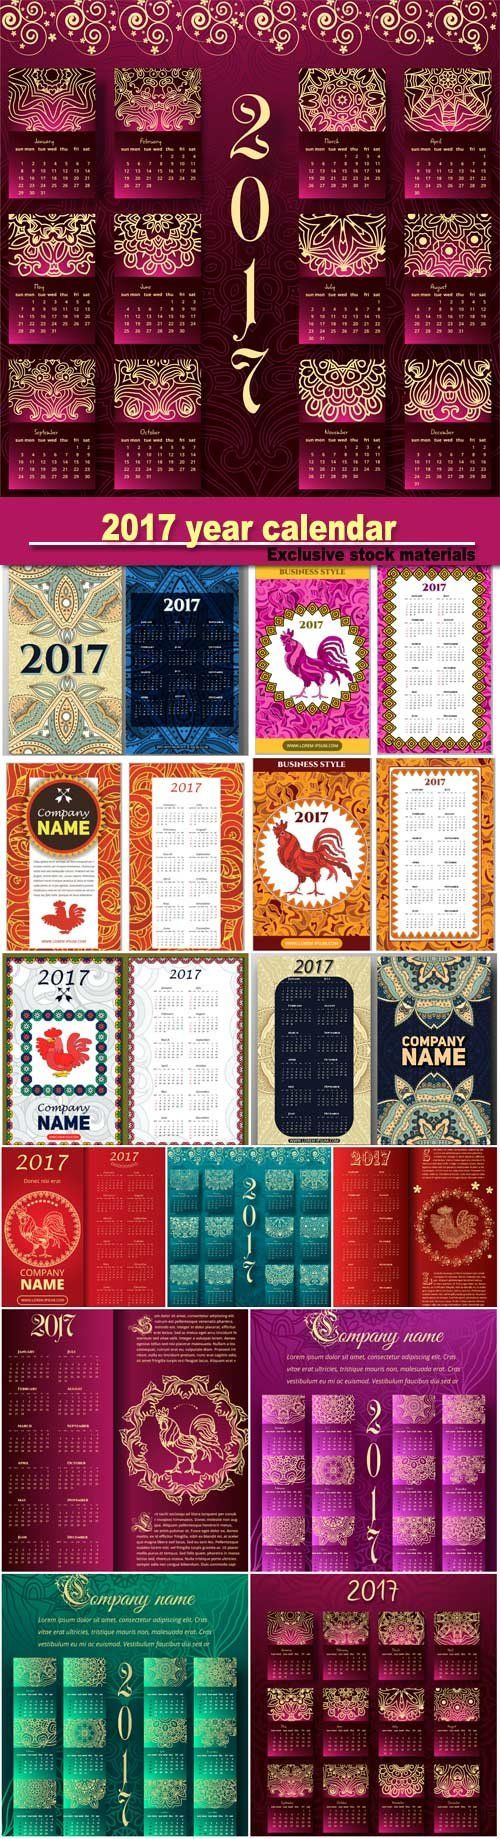 Luxury colorful 2017 year calendar template